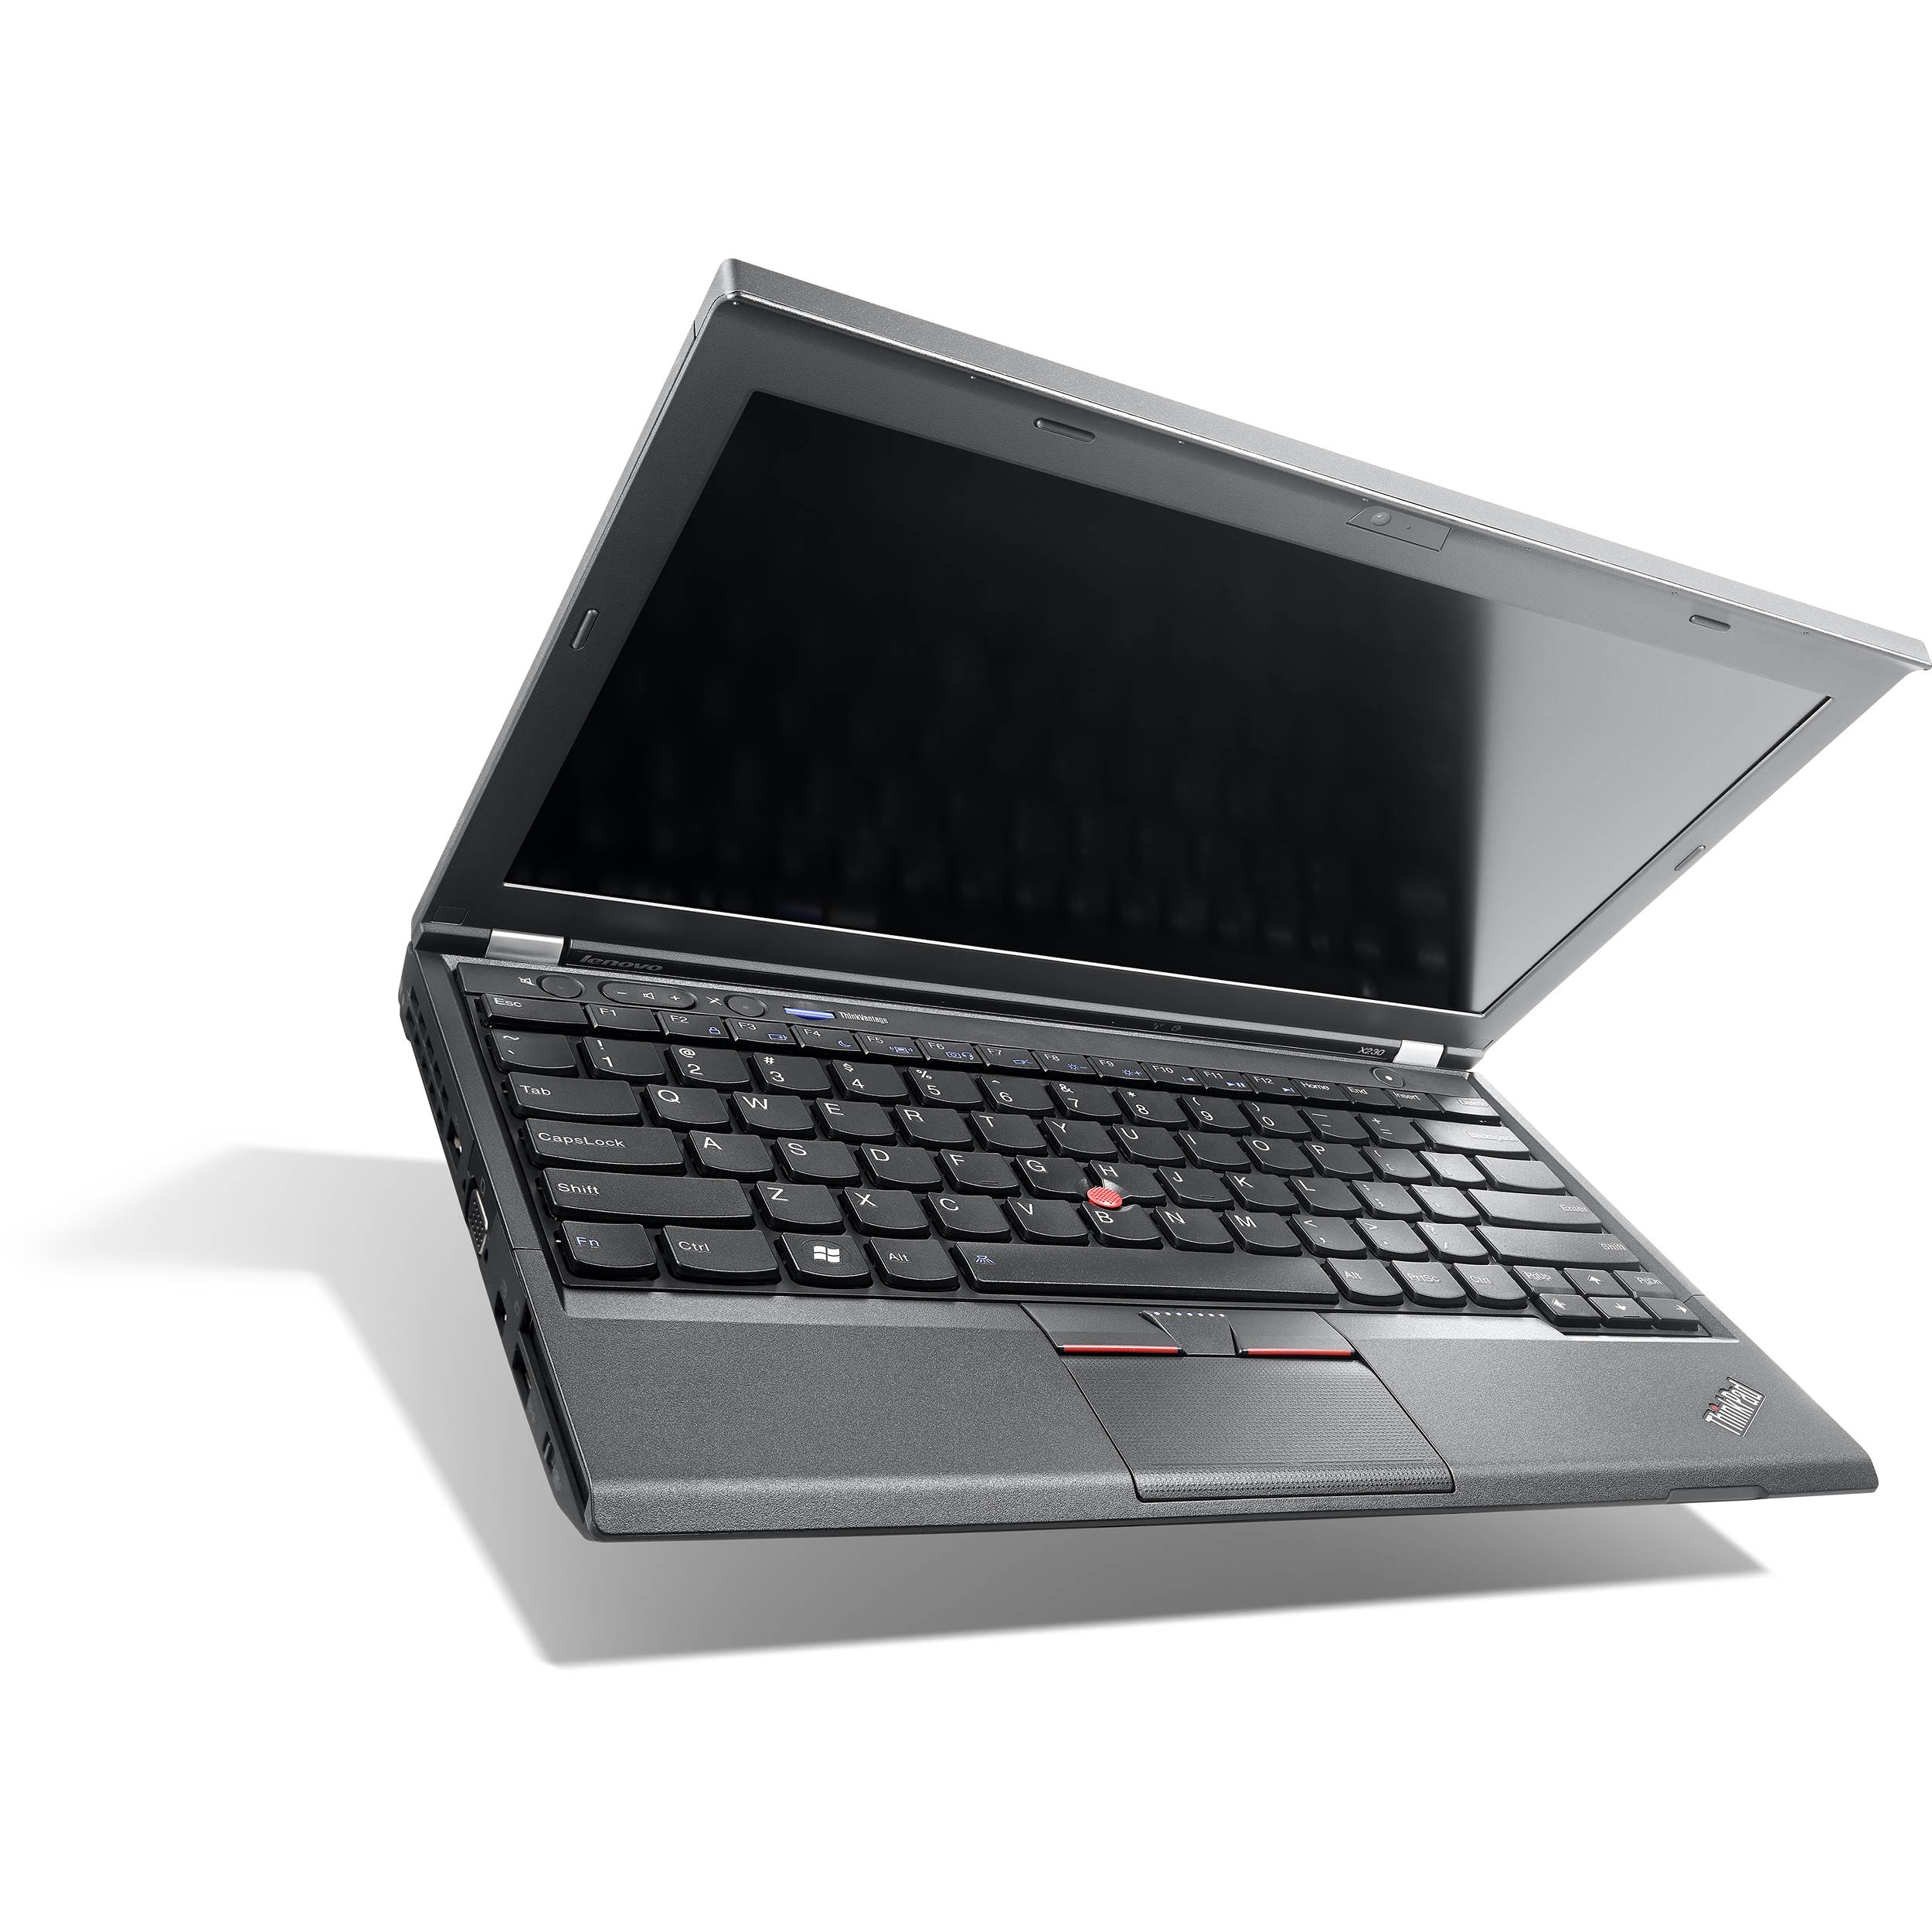 Lenovo ThinkPad X230s ThinkVantage Fingerprint Treiber Windows 7